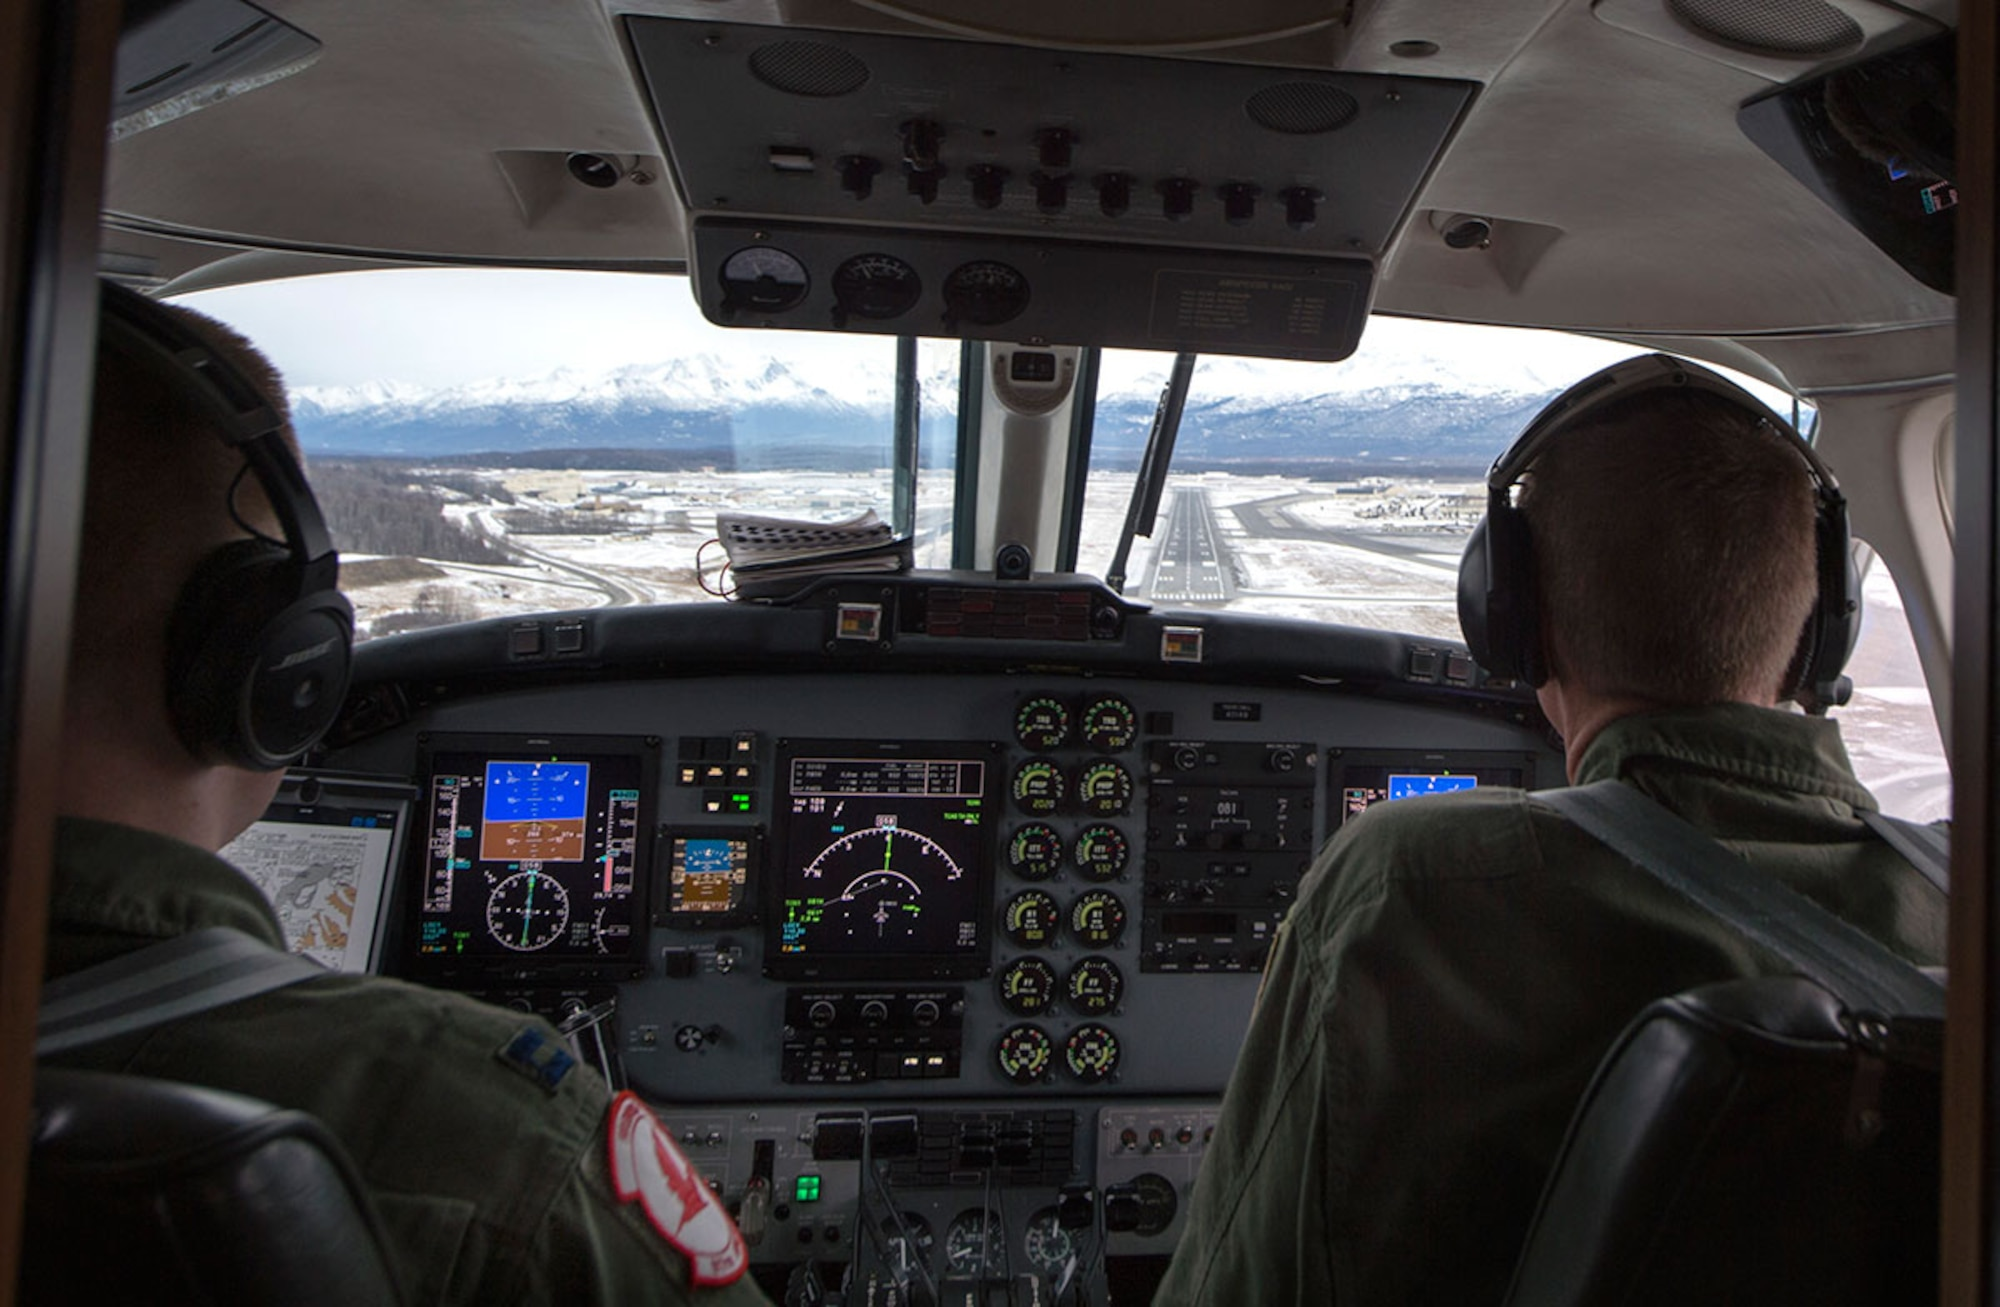 Maj. Ryan Wong, left, prepares to land at Joint Base Elmendorf-Richardson, Alaska, Feb. 23, 2016, while Lt. Col. Blake Johnson watches as part of site pilot training. Wong and Johnson are both assigned to the 517th Airlift Squadron. (U.S. Air Force photo/Staff Sgt. Sheila deVera)